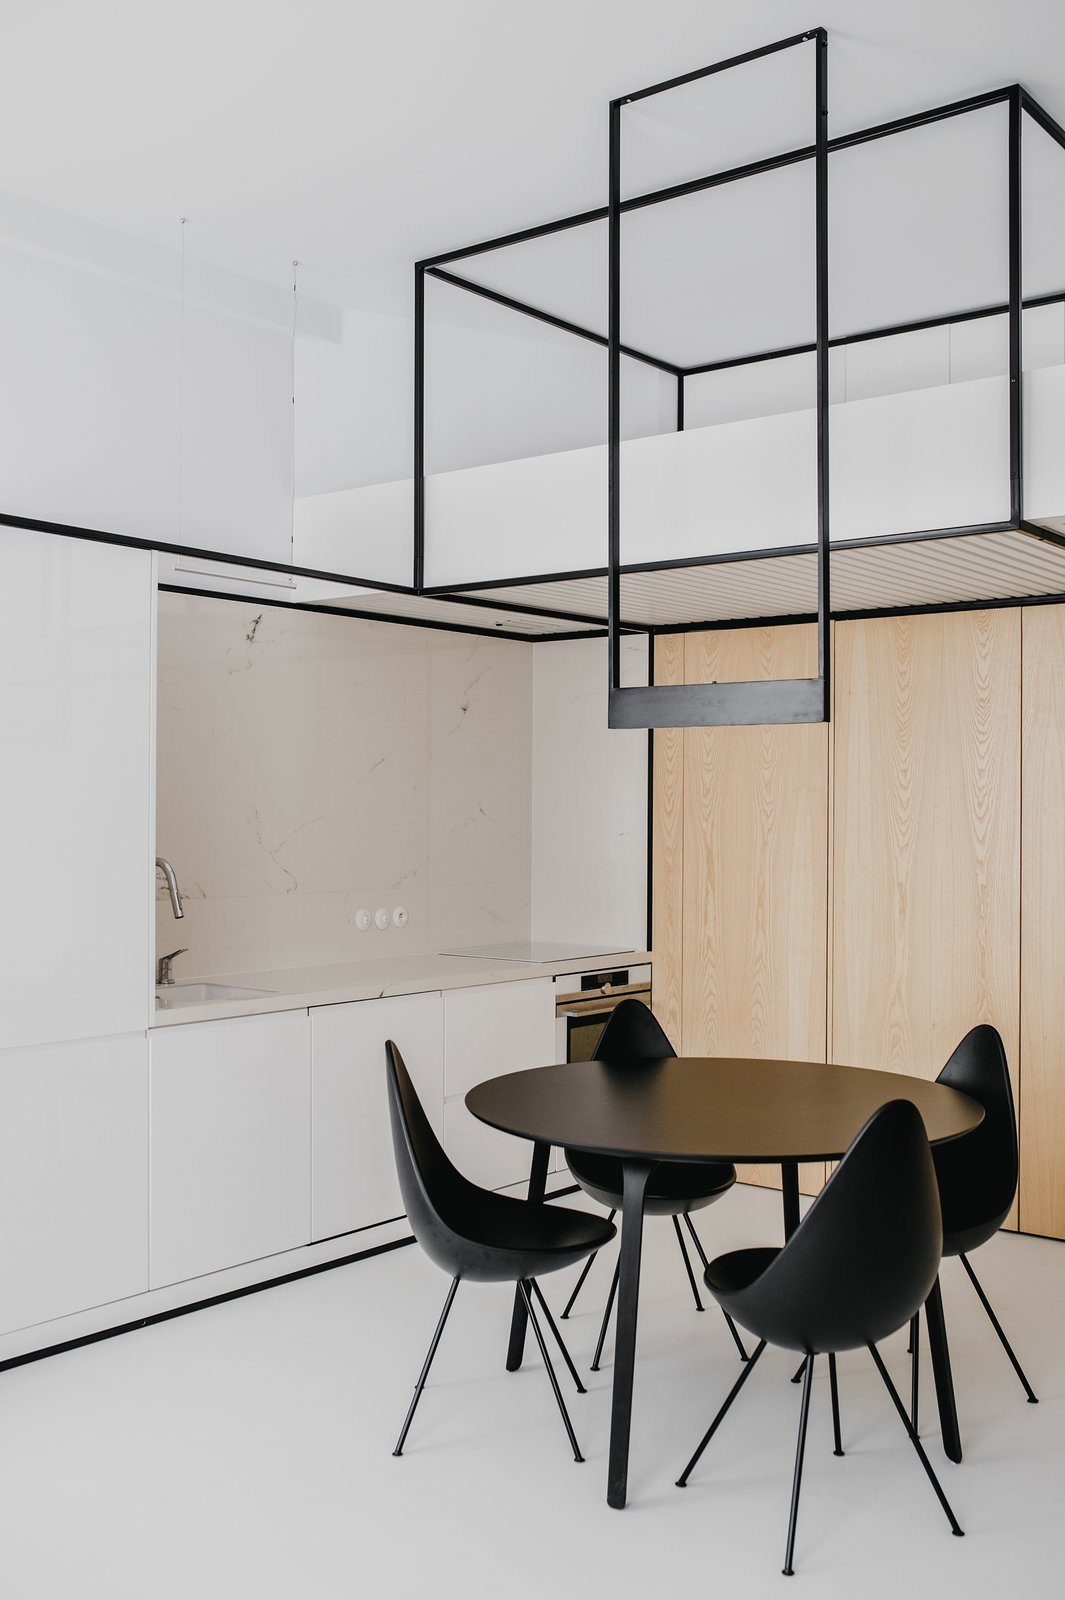 Dining Room Living open space + mezzanine (bedroom)  Wireframe by MUS ARCHITECTS